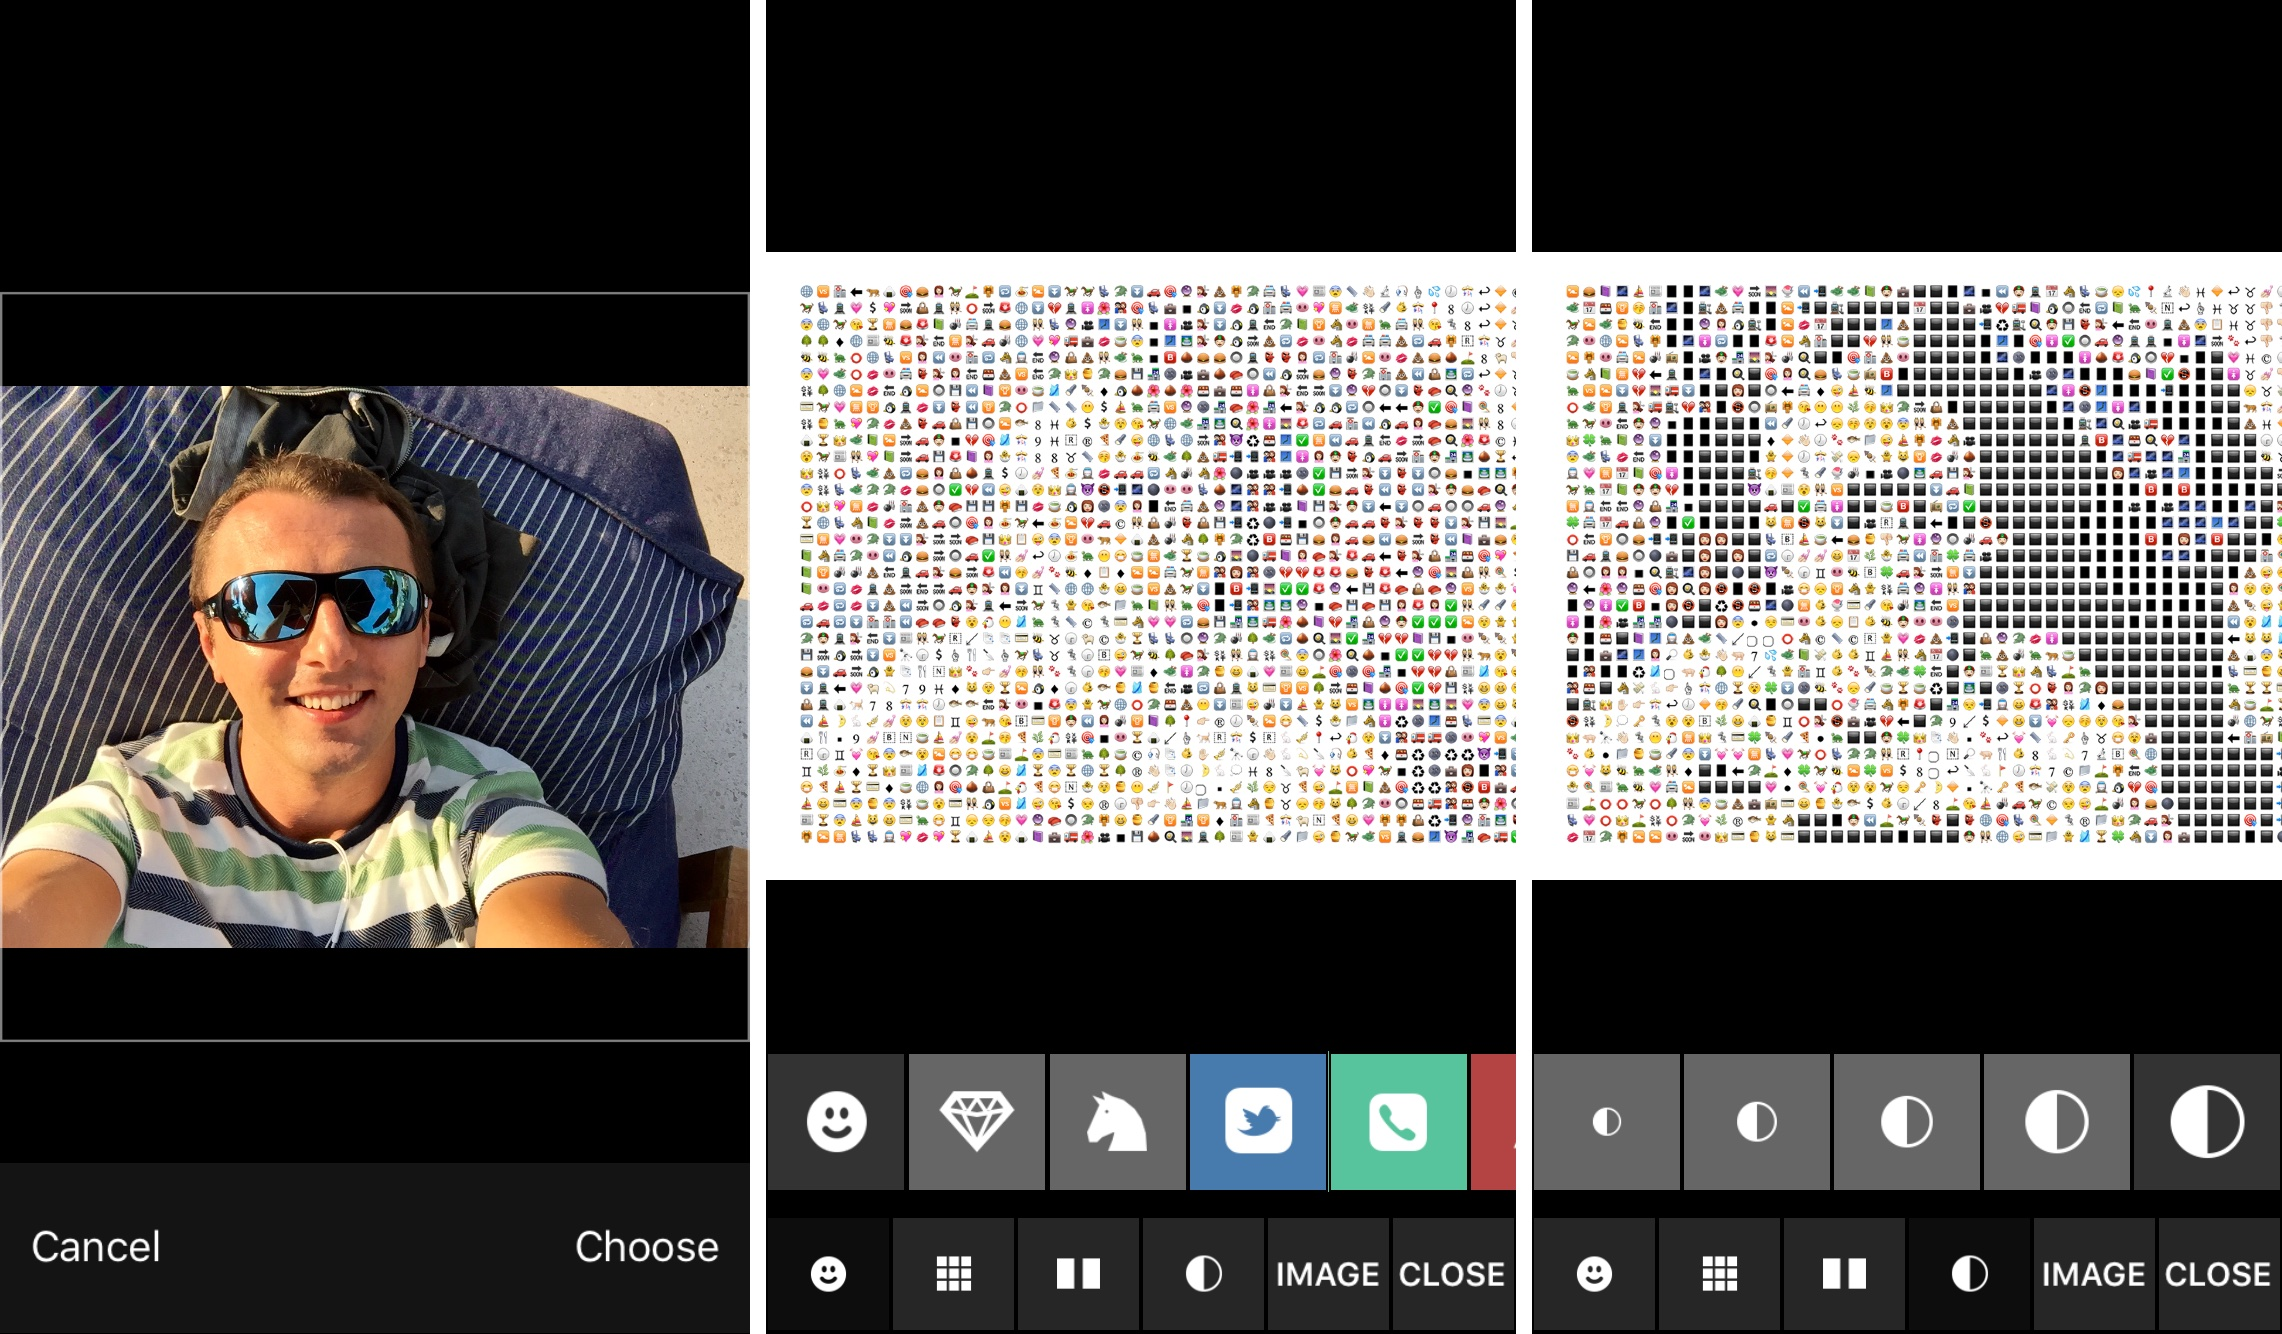 Review: Emojify turns your photos into emoji artwork, ASCII